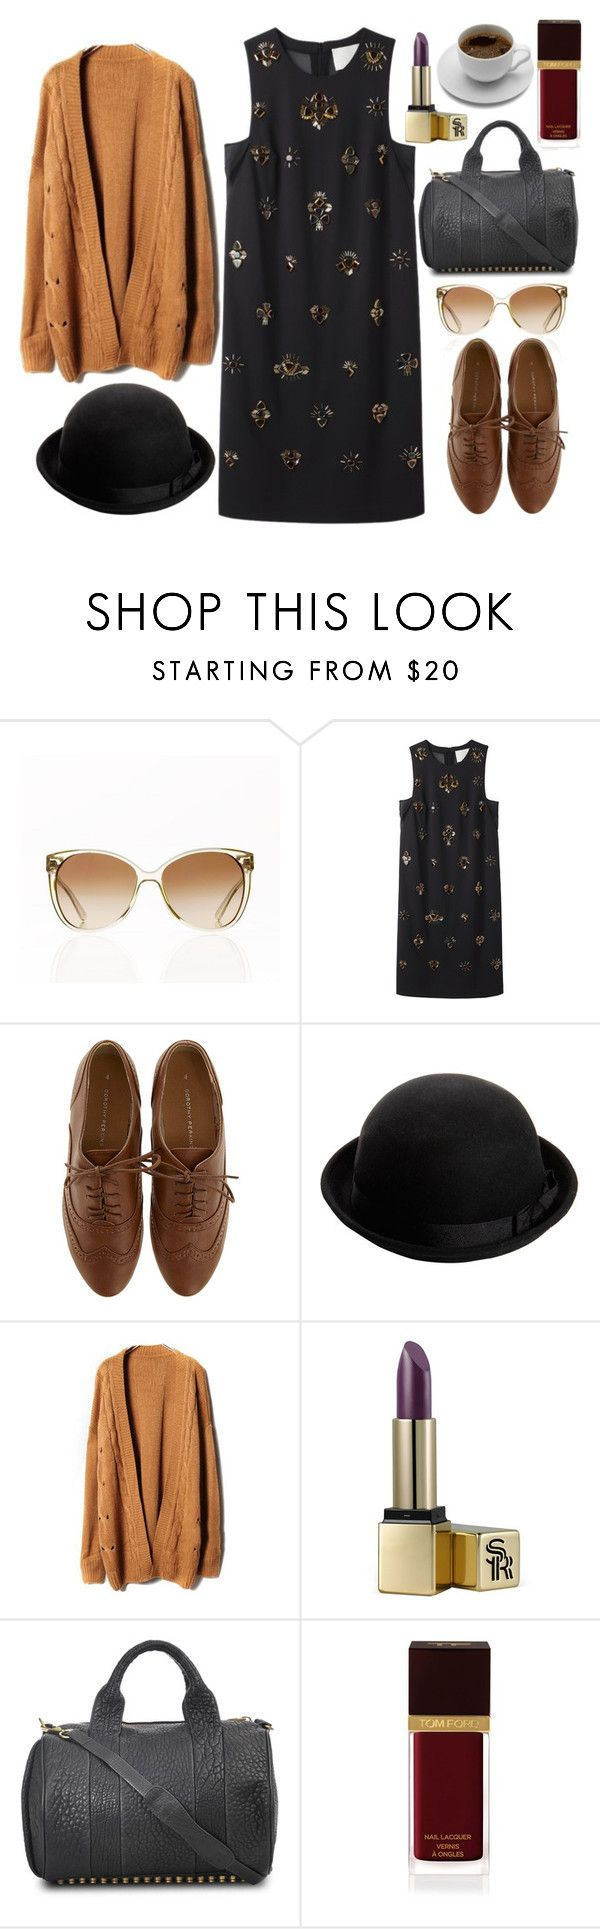 """I dipped my cigarette and rode the bus."" by elizabethcarter ❤ liked on Polyvore featuring Tory Burch, 3.1 Phillip Lim, Dorothy Perkins, Boohoo, Sunday Riley, Alexander Wang, Tom Ford, oxford shoes, oversized cardigans and bowler hats"